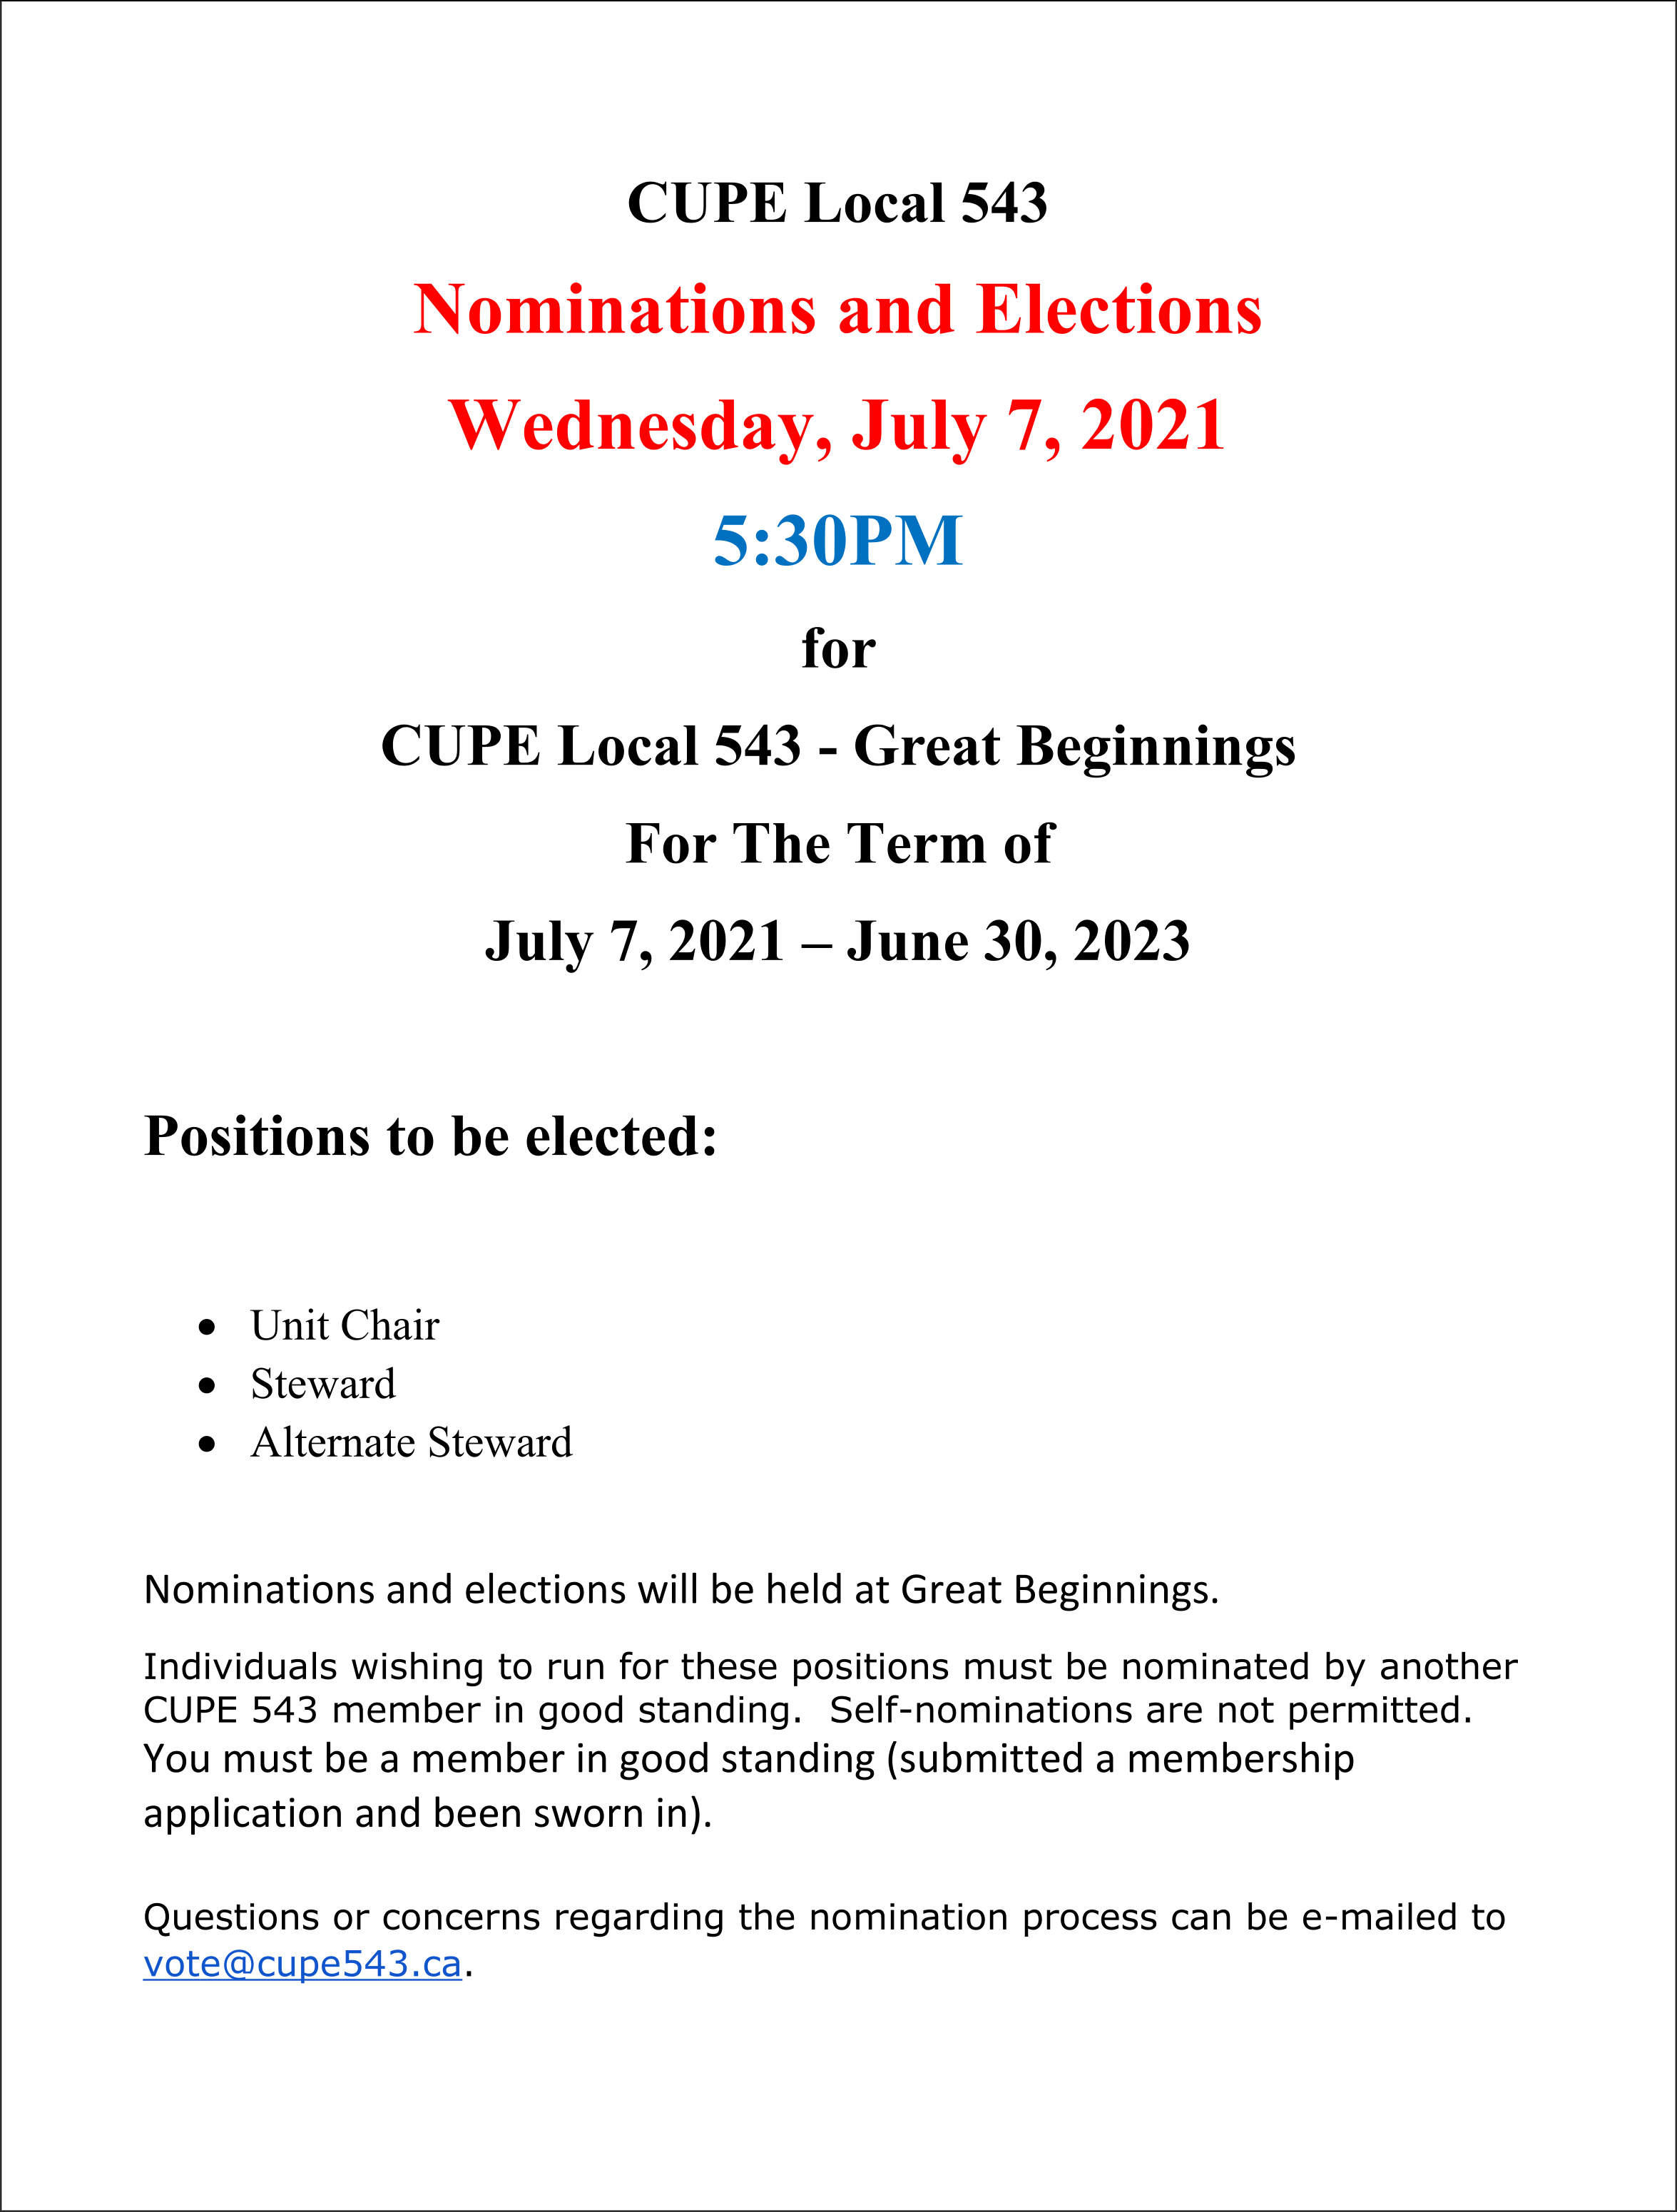 Great Beginnings Members:  Nominations and Elections @ Great Beginnings